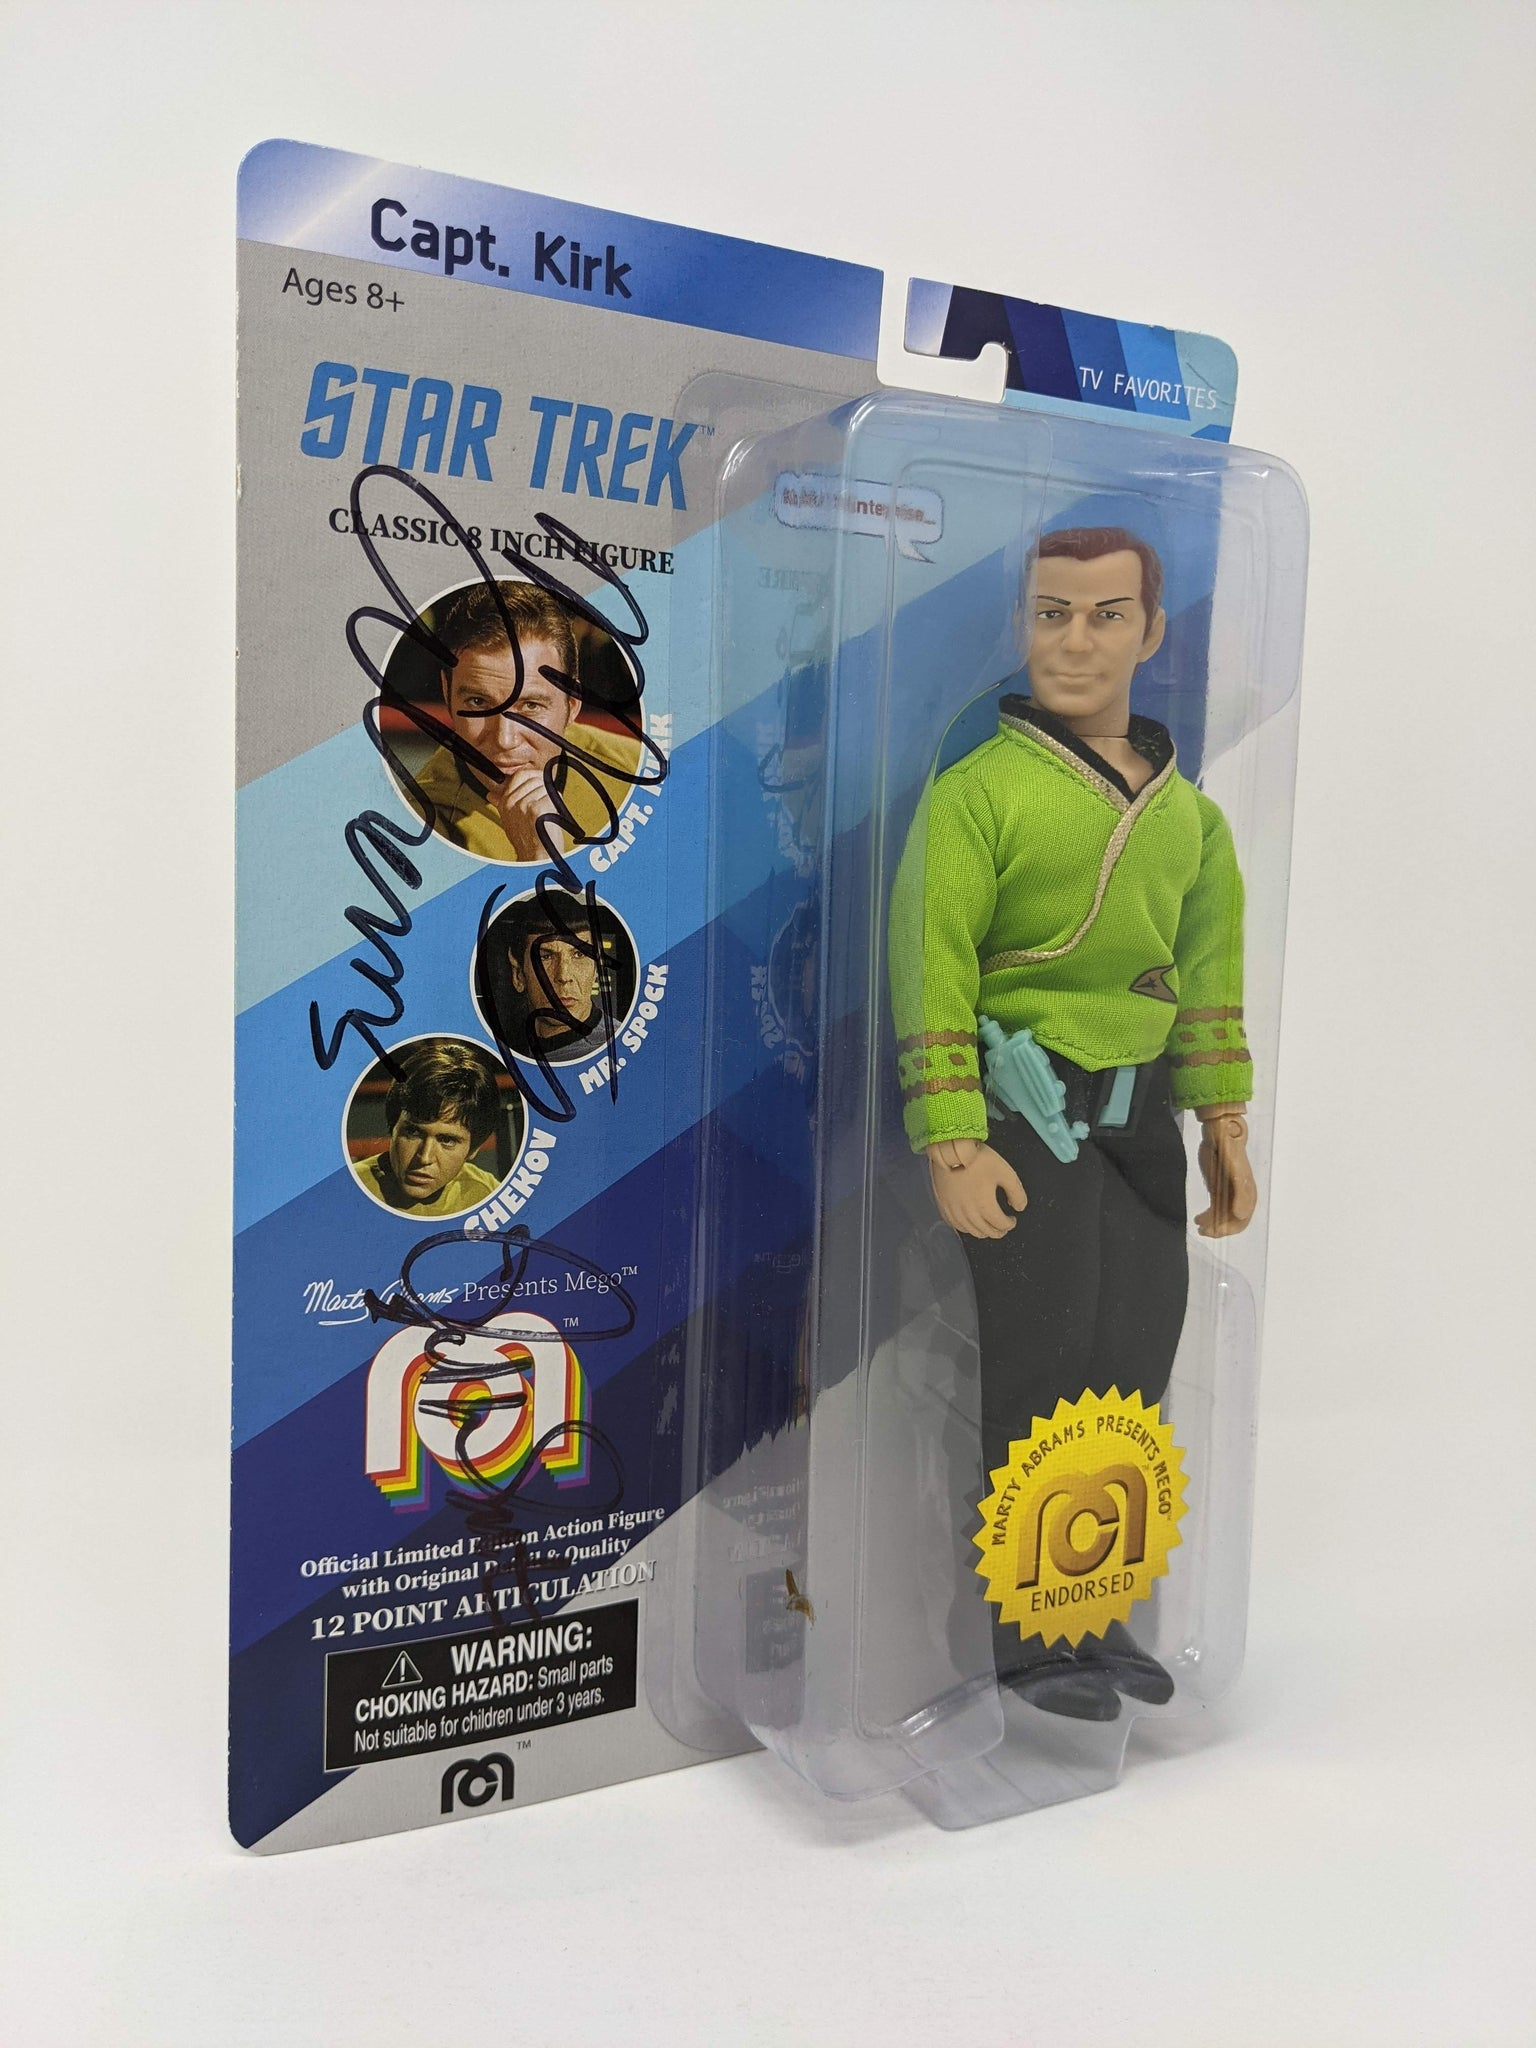 Star Trek Capt Kirk Mego Action Figure JSA Autograph Signed by Shatner Abrams Auto GalaxyCon